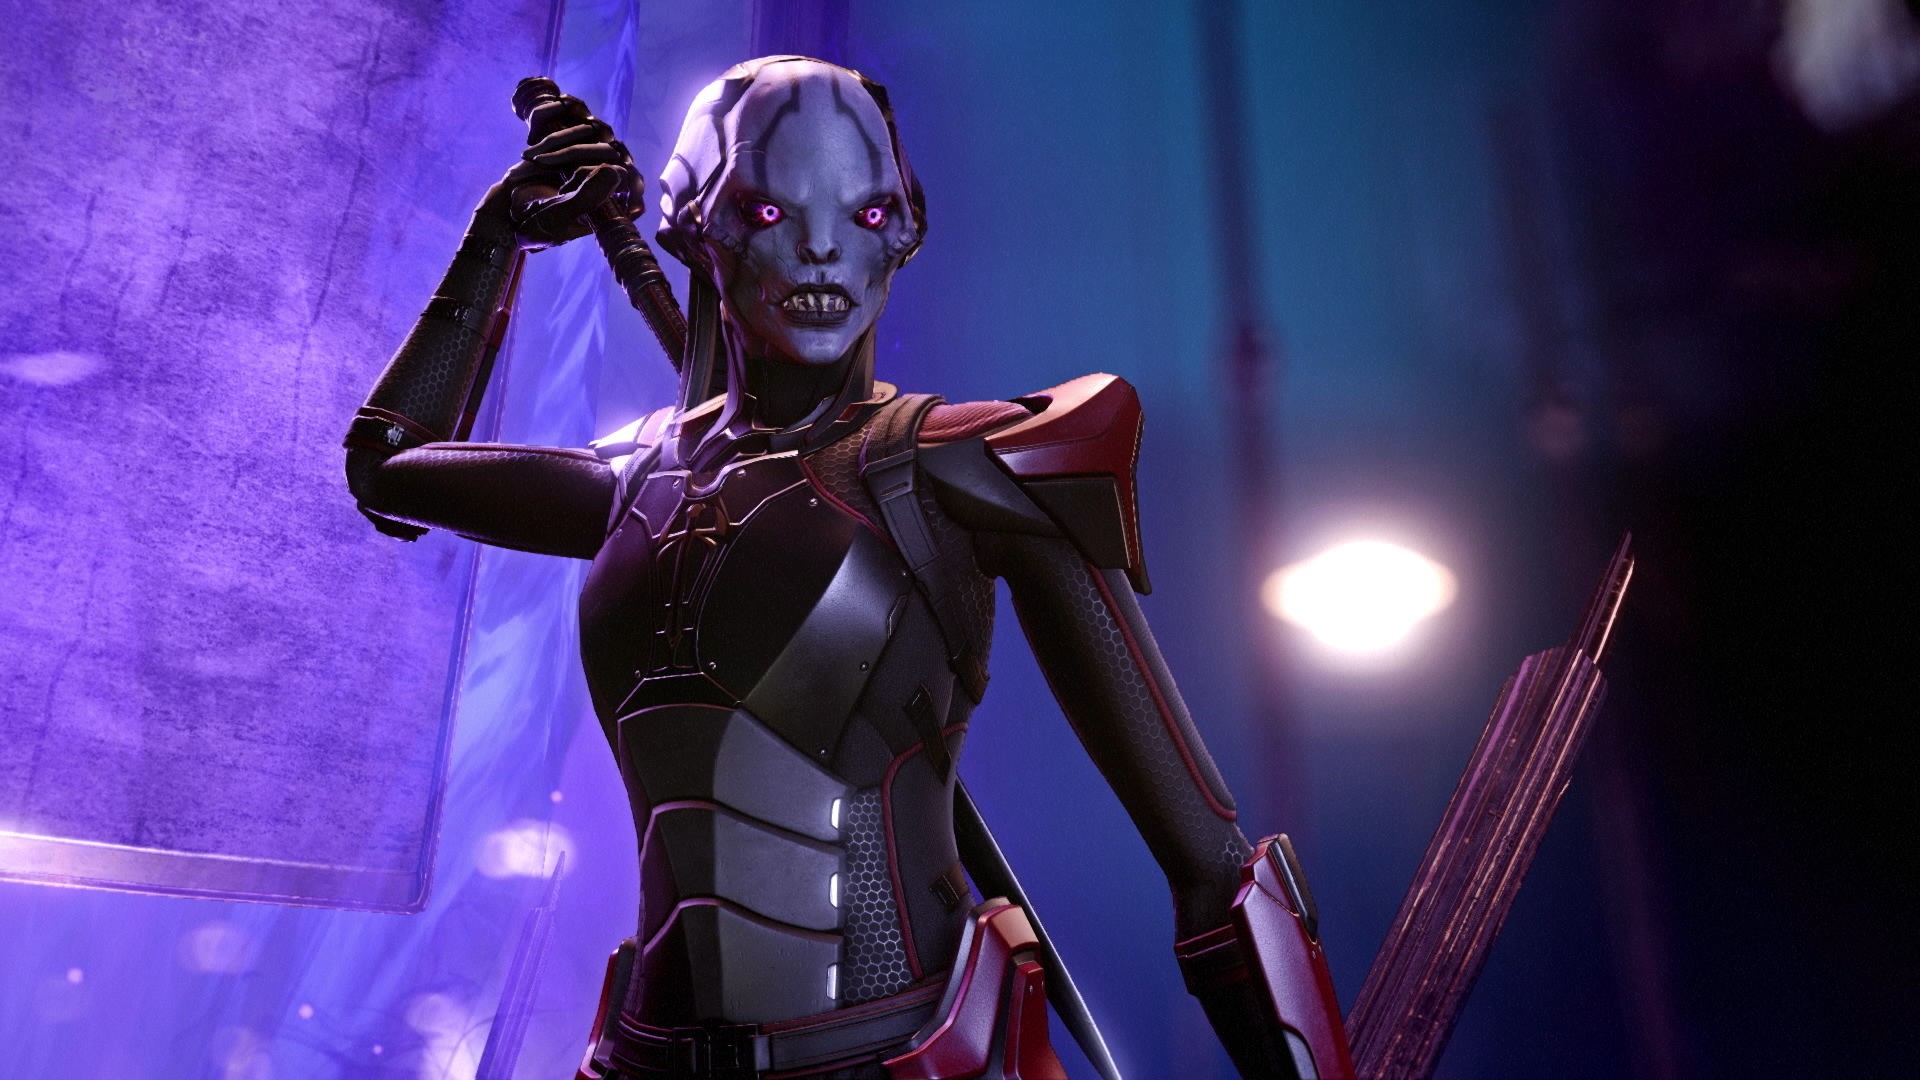 XCOM 2's massive The Long War of the Chosen mod is nearly done